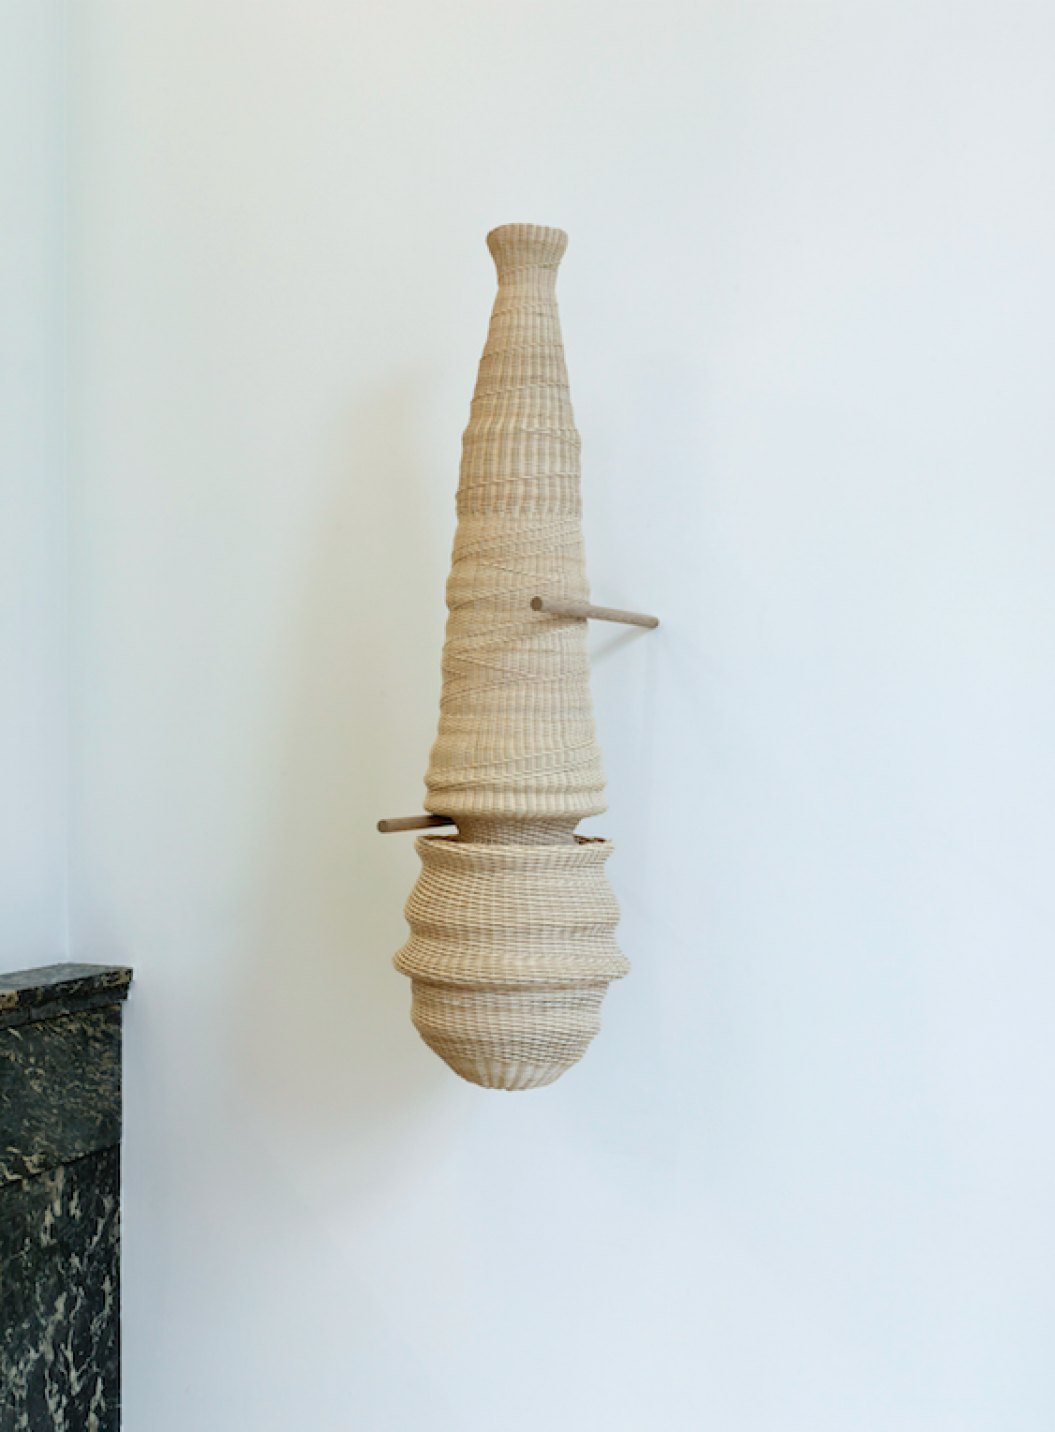 Dan Coopey,&nbsp;<em>untitled (Xia / Sinai), </em>2017<em>,&nbsp;</em>rattan, walnut, kernel, mother of pearl, chewing gum, oak,&nbsp;82 × 35 ×&nbsp;23 cm - Mendes Wood DM